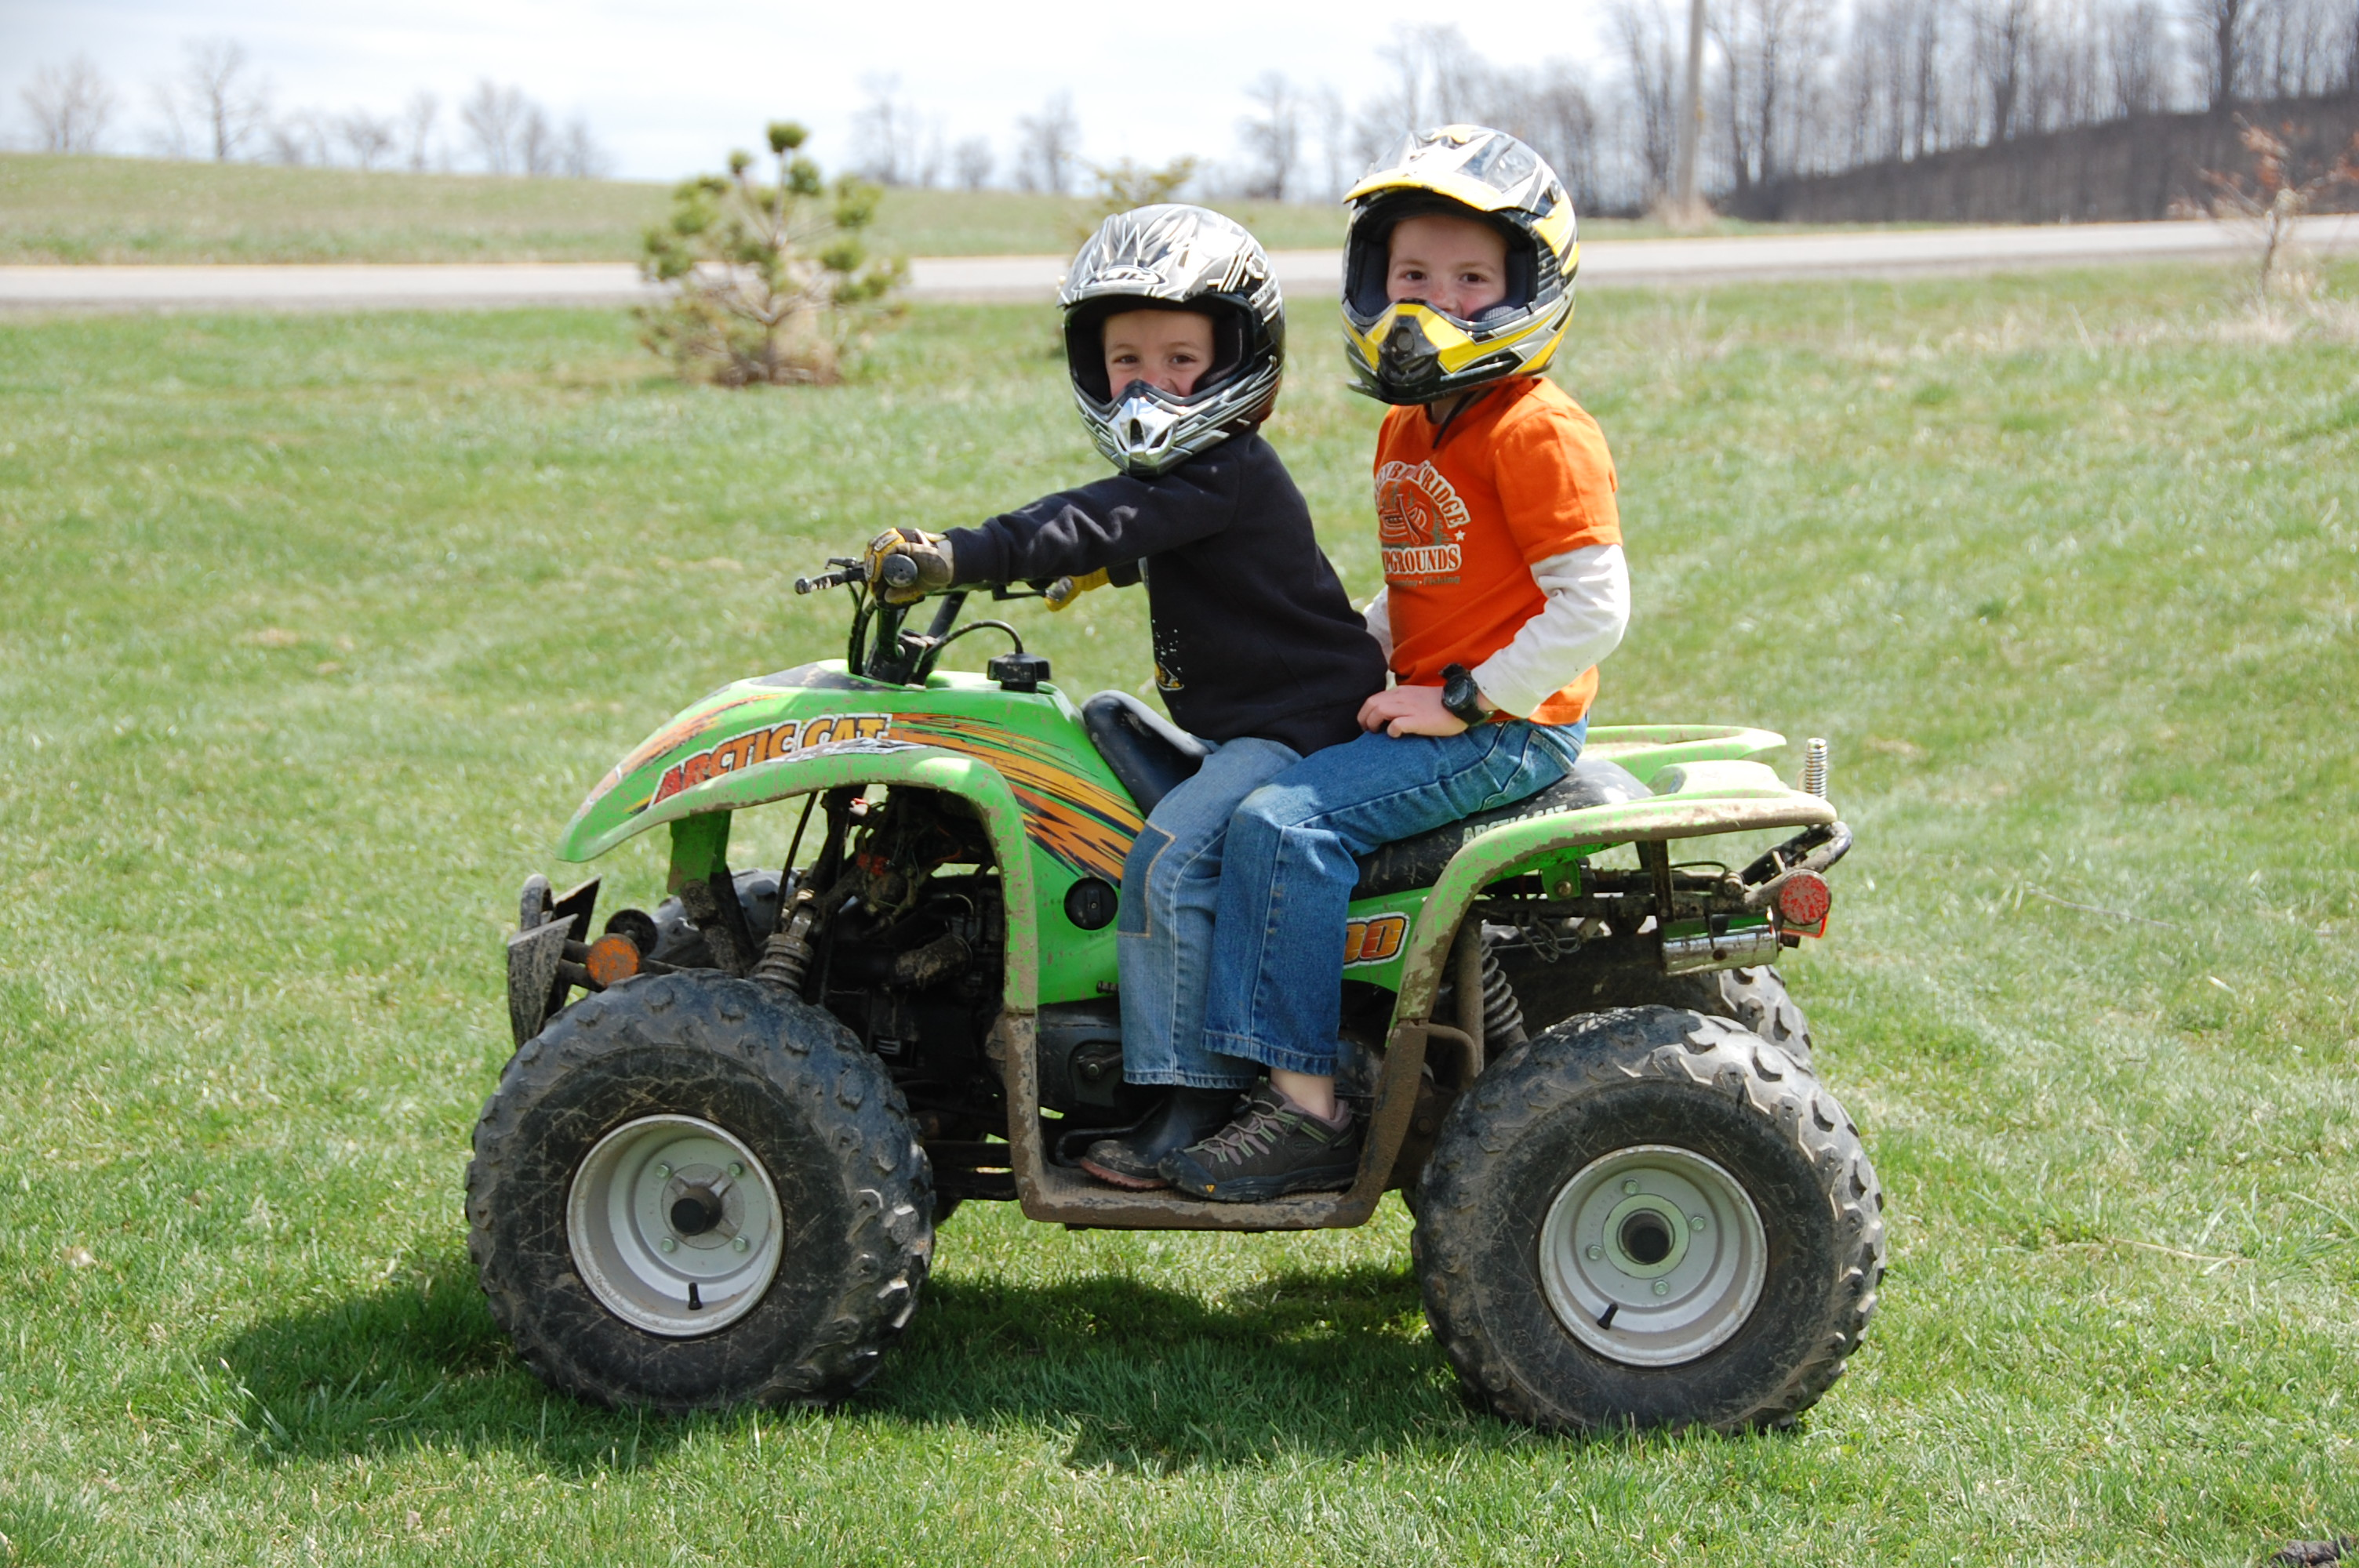 Bryant giving Cooper a ride on the 4-Wheeler.